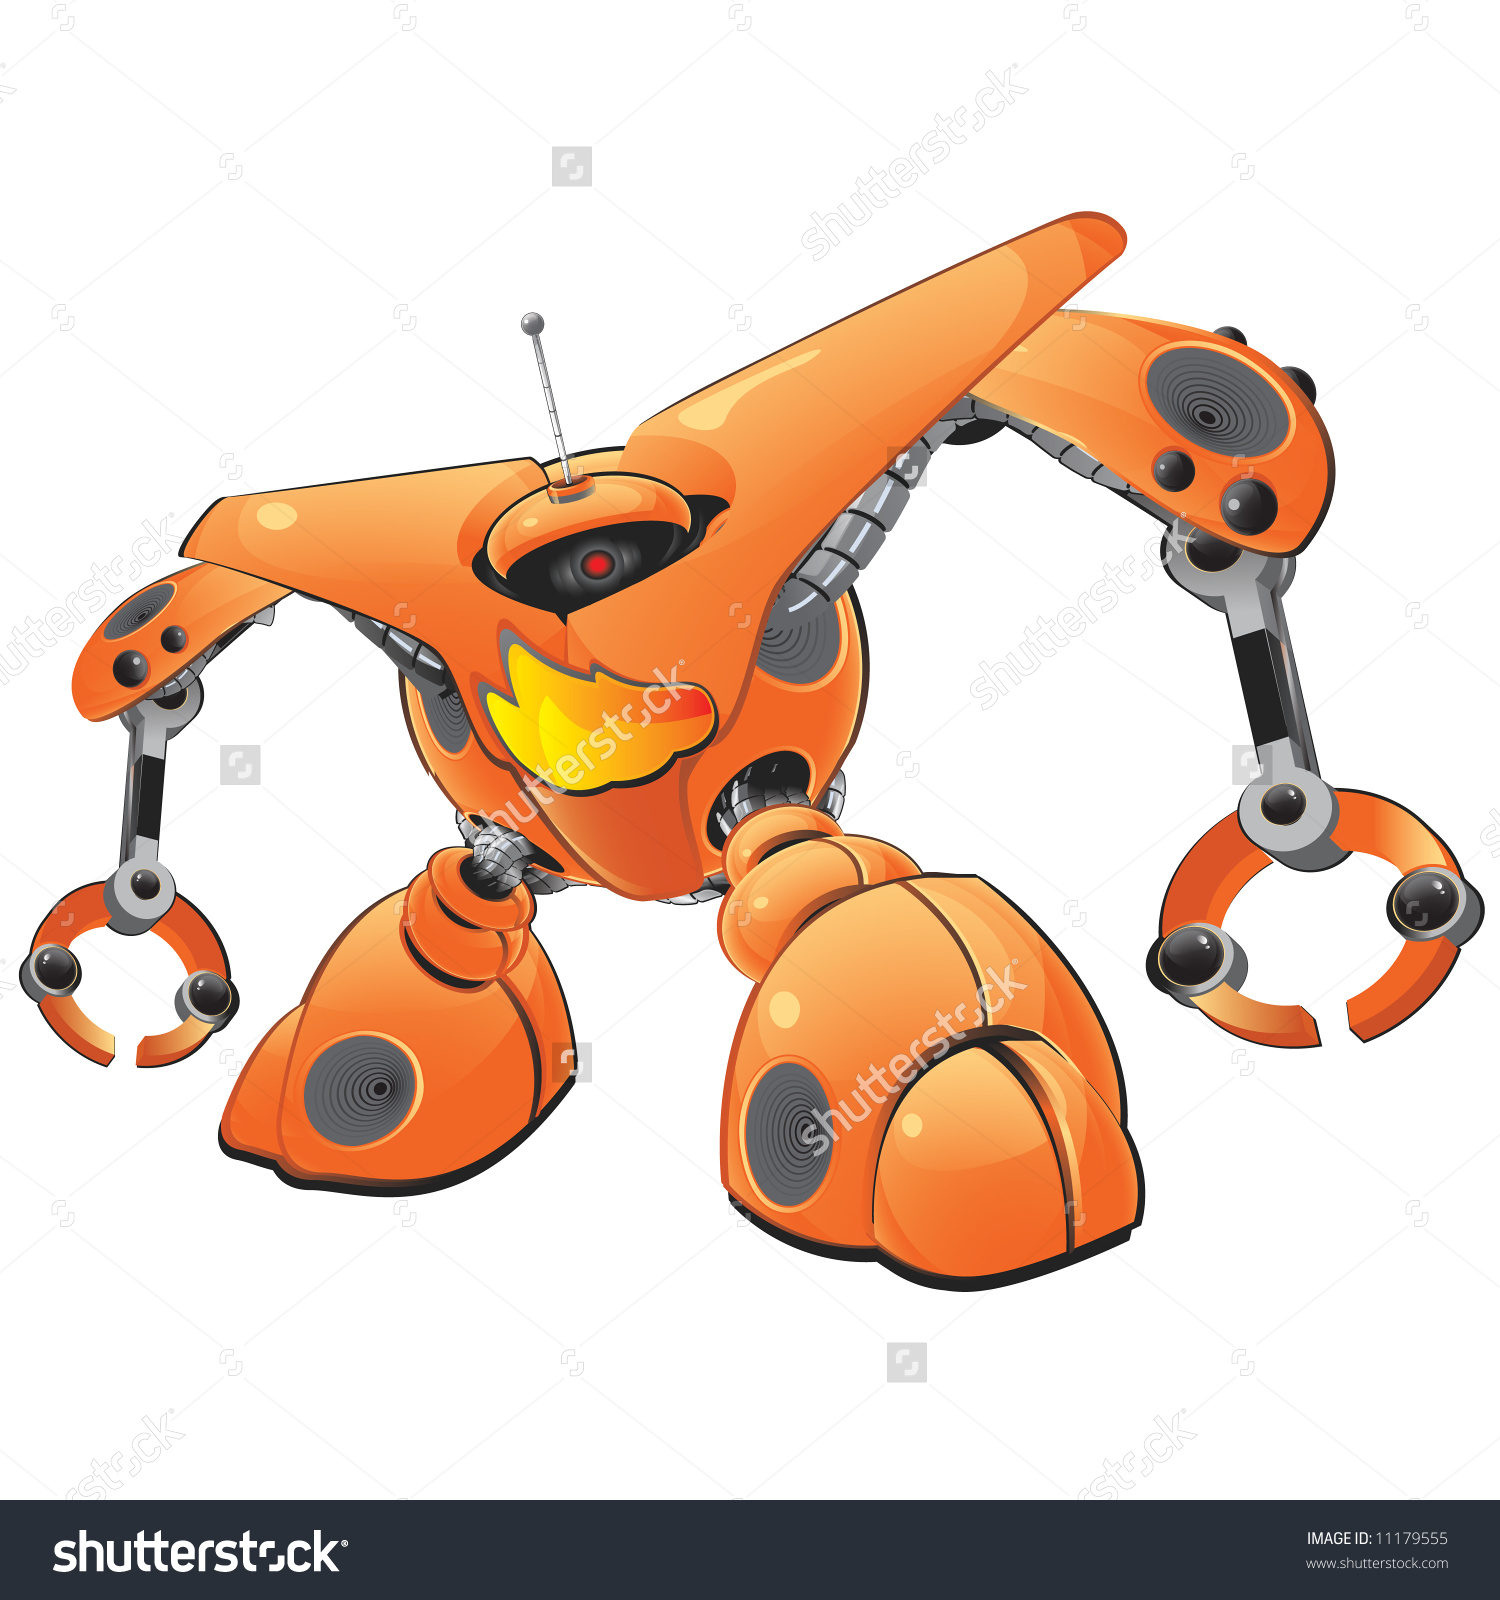 A Giant Orange Robot, Created As Part Of An Internet Robot Series.